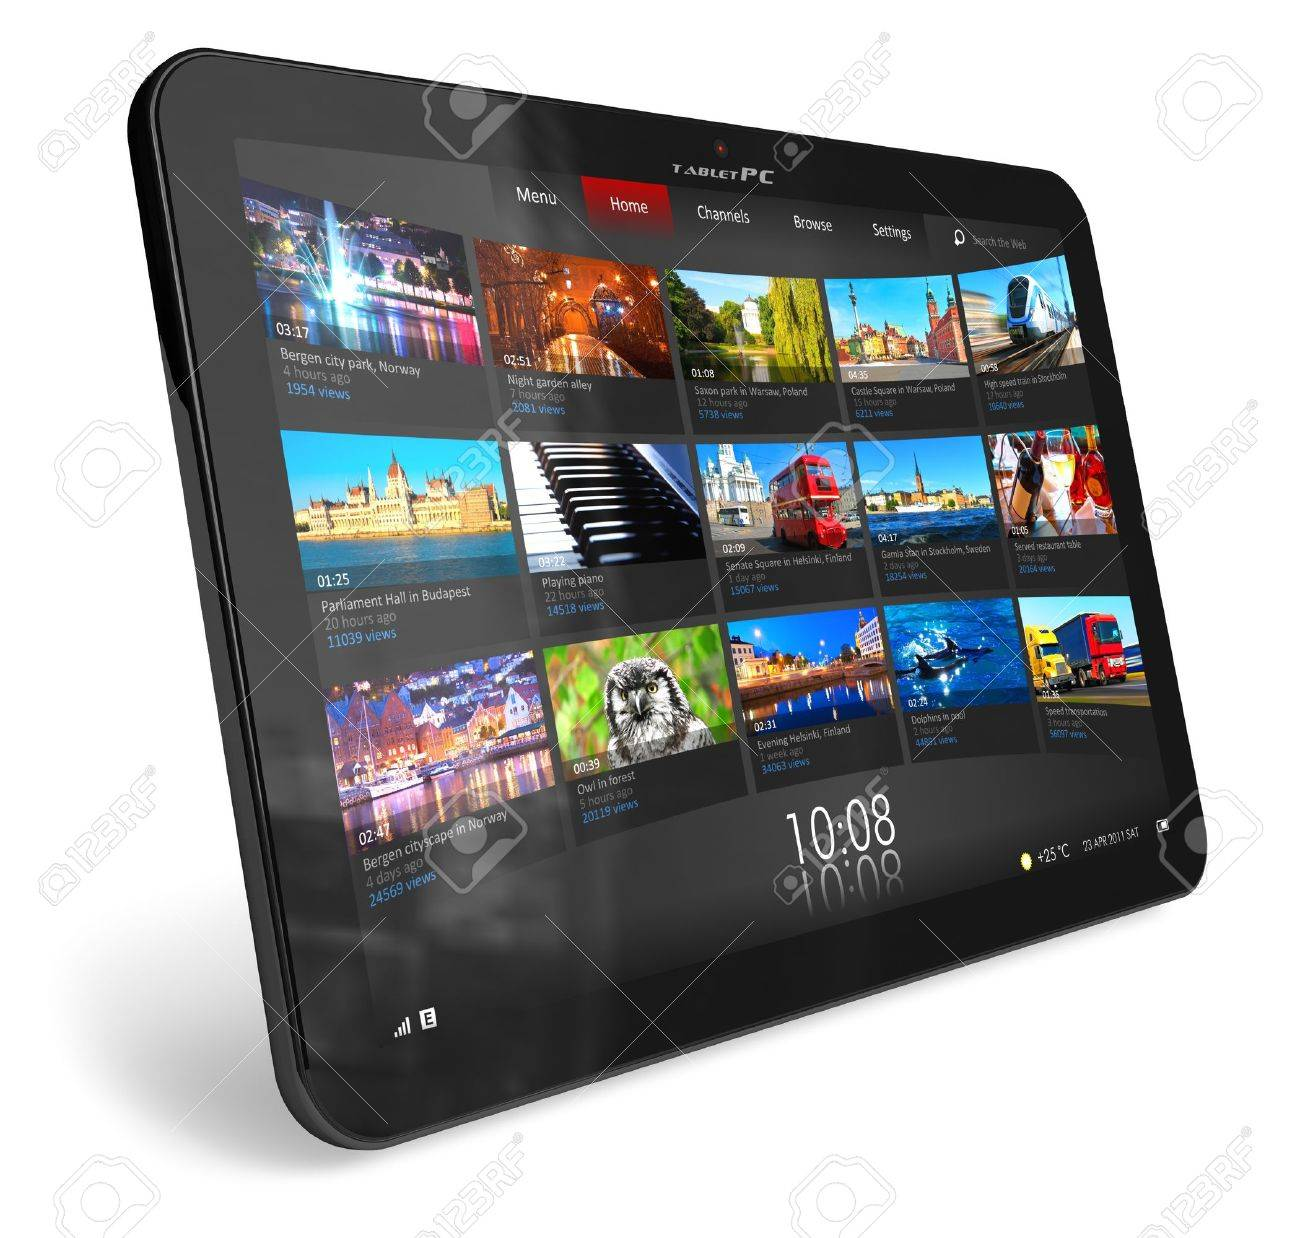 Tablet PC *** DESIGN OF THIS DEVICE IS MY OWN. PLEASE SEE RELEASE FOR DETAILS Stock Photo - 9227930